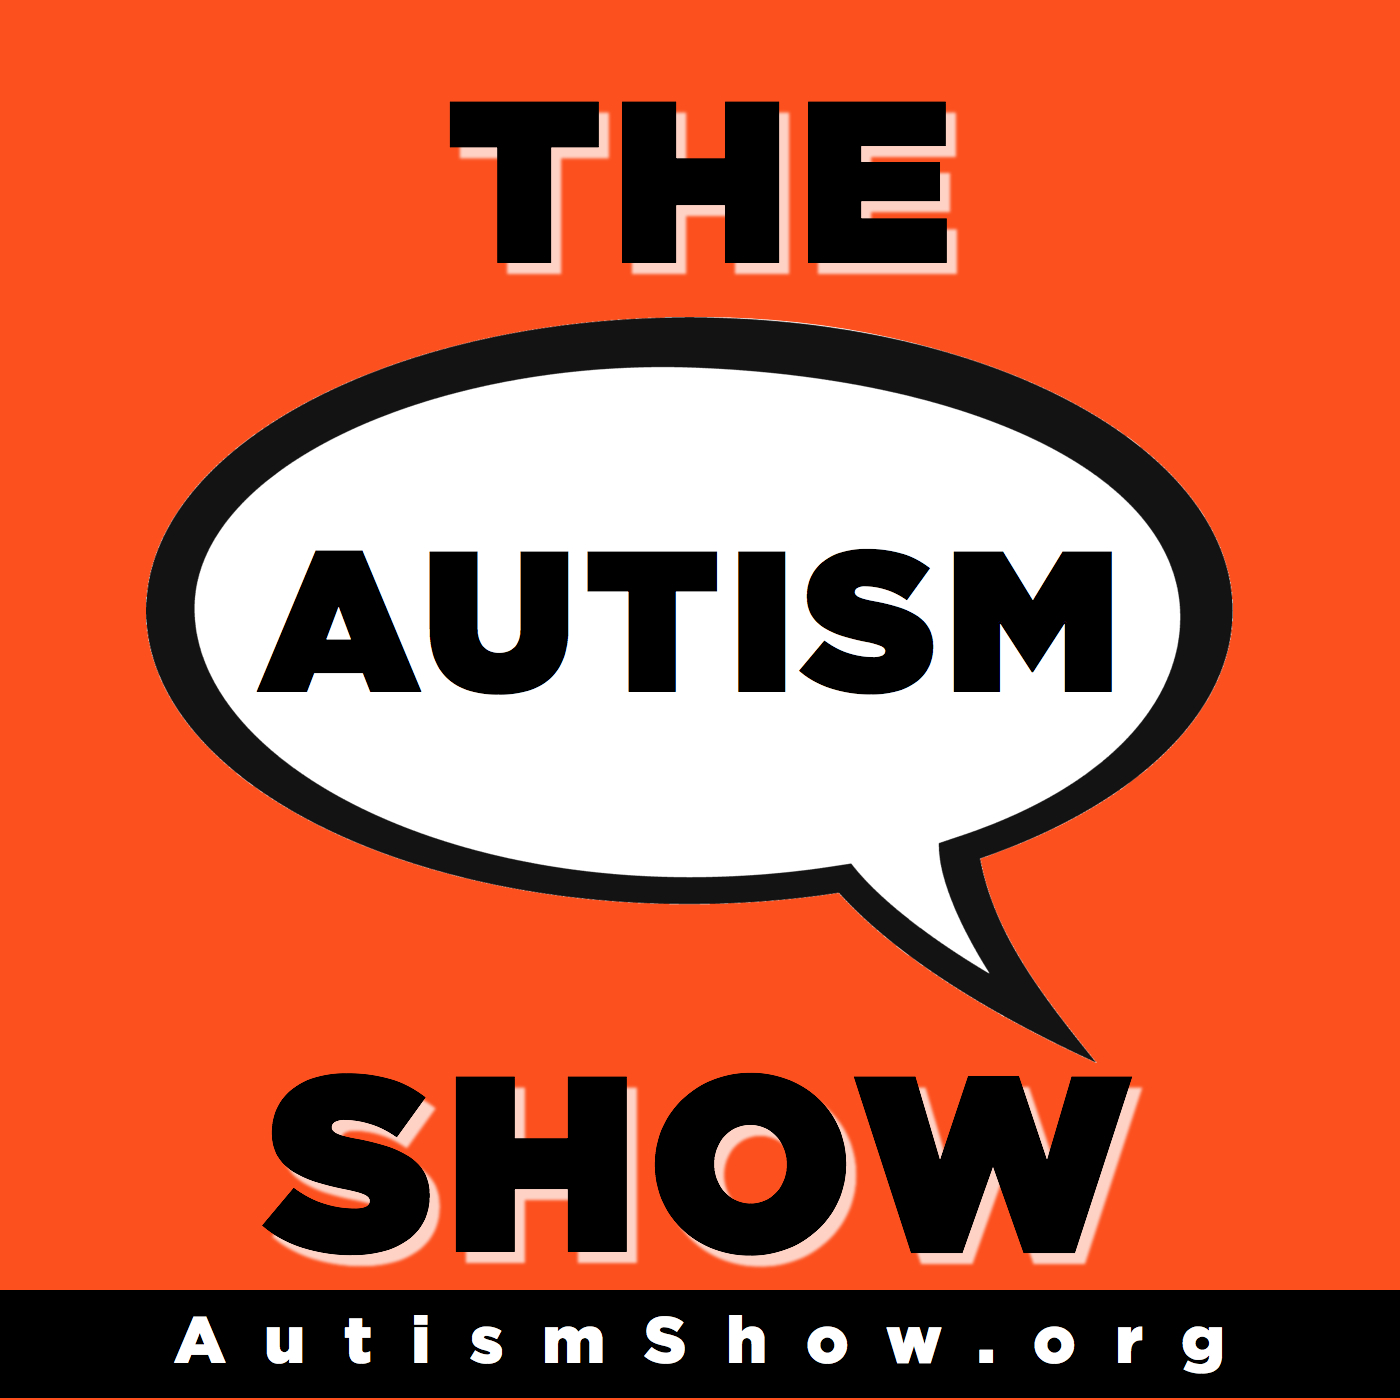 Dr. Temple Grandin Helps Launch The Autism Show Podcast